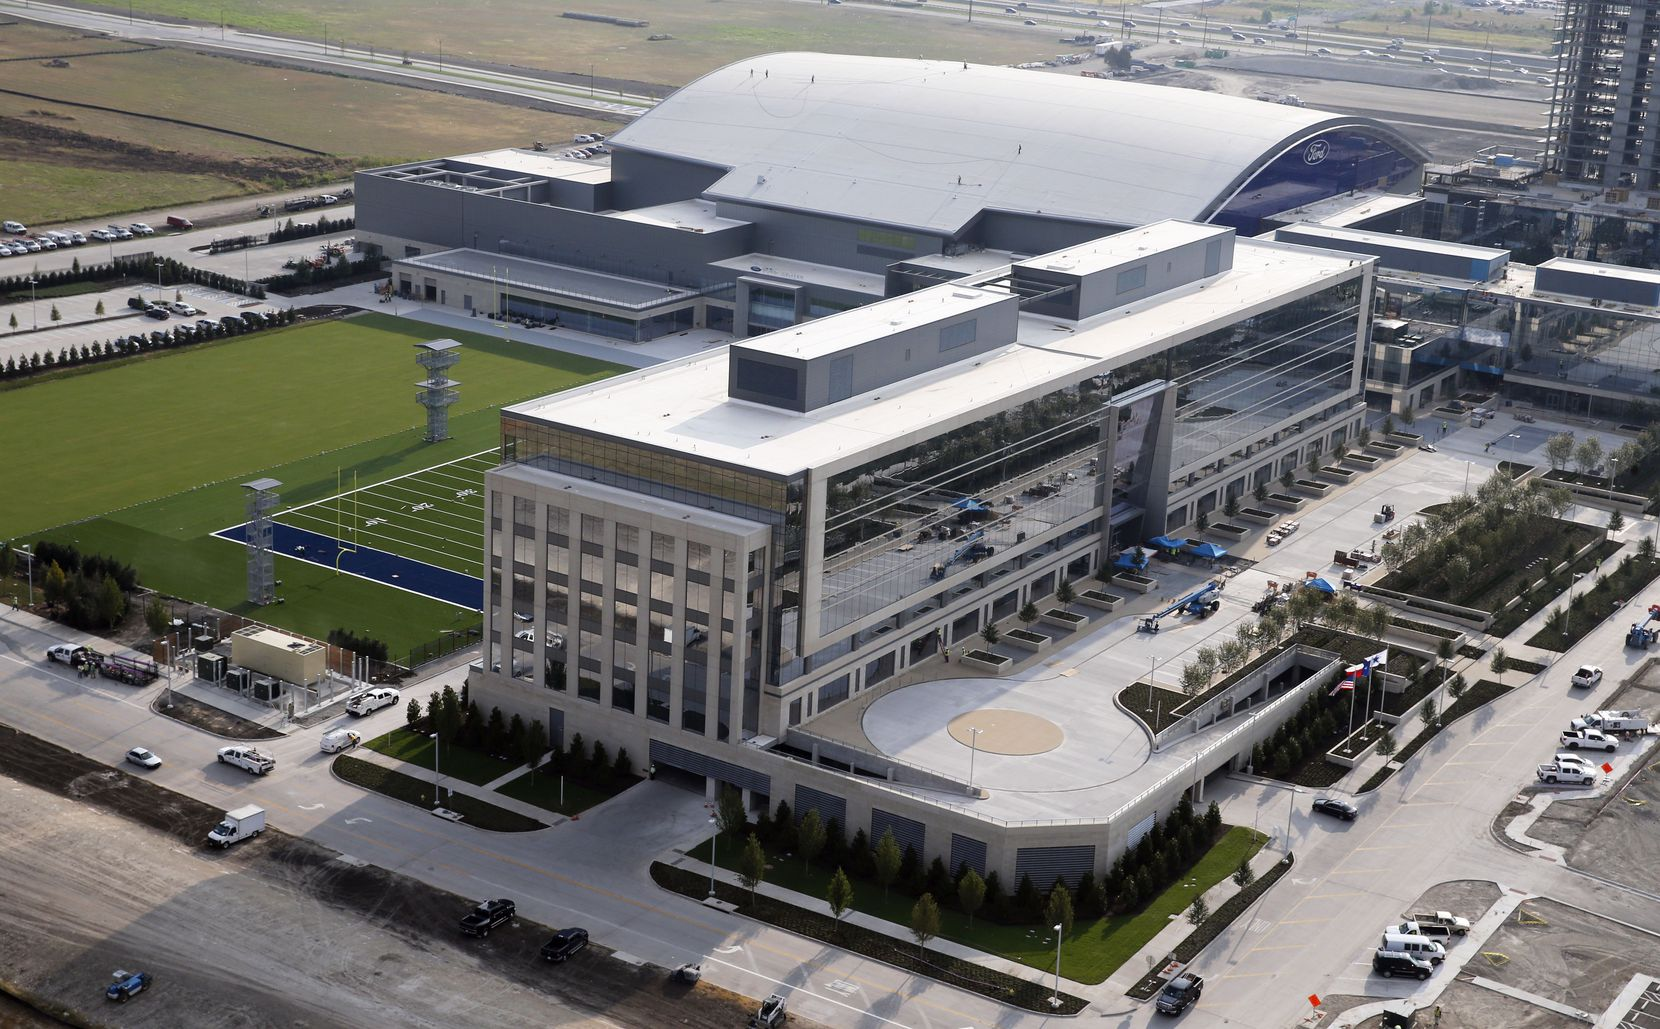 A residential tower with a minimum of 17 stories is being added to plans for the Dallas Cowboy's Star in Frisco project.